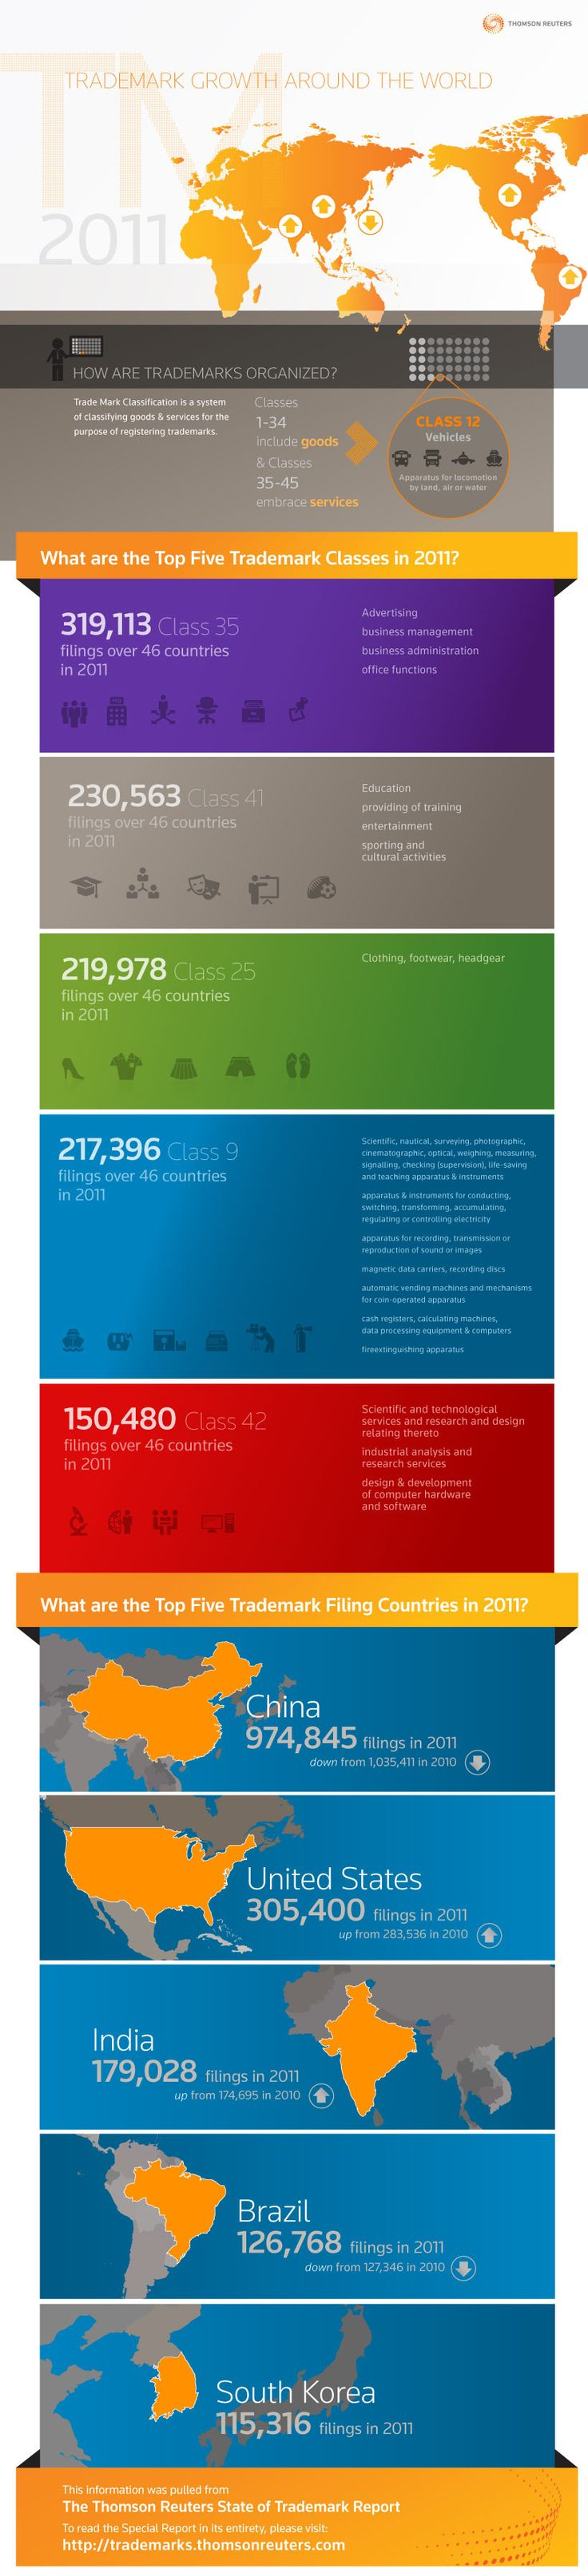 El crecimiento del registro de marcas 2011 #infografia #infographic #marketing